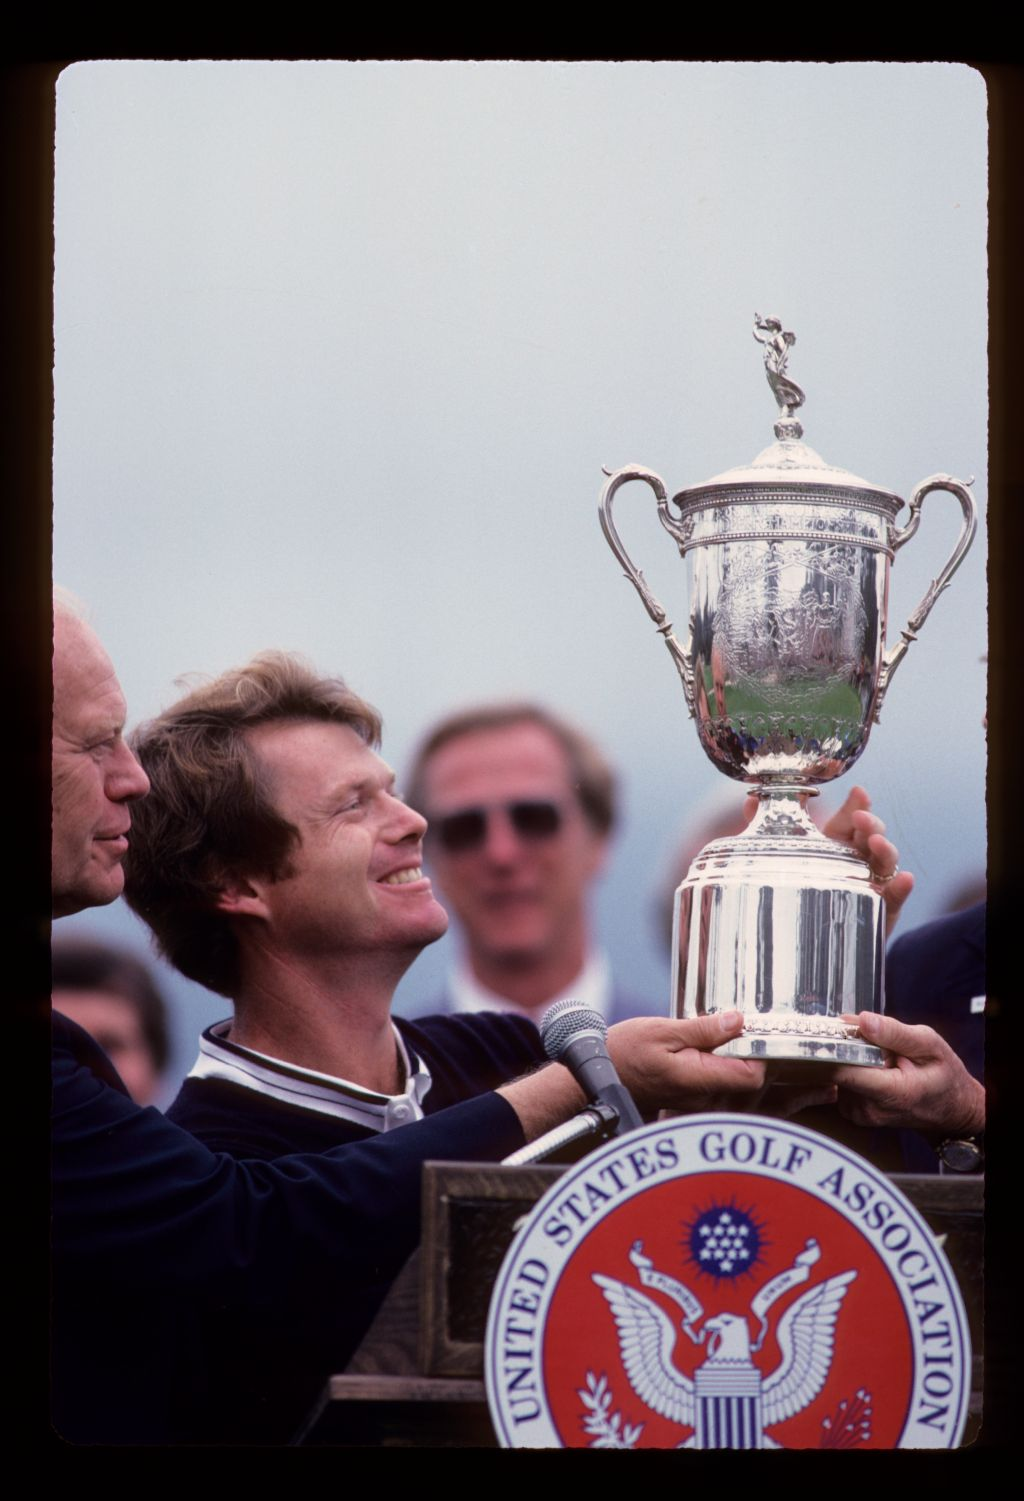 A victorious Tom Watson admires the US Open trophy while President Gerald Ford looks on